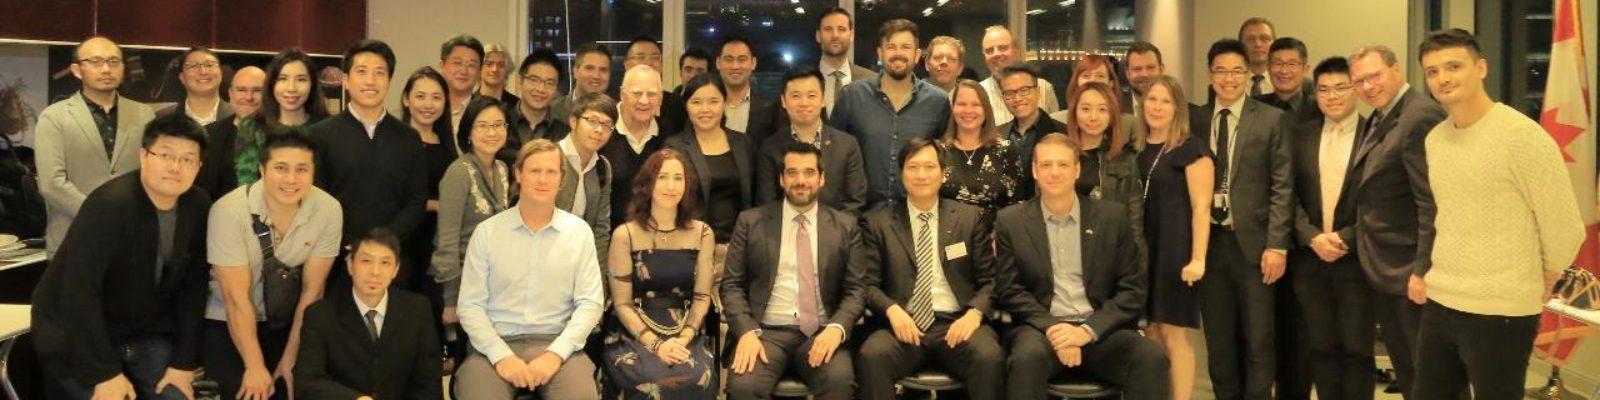 Canadian Chamber of Commerce Board of Directors 2016